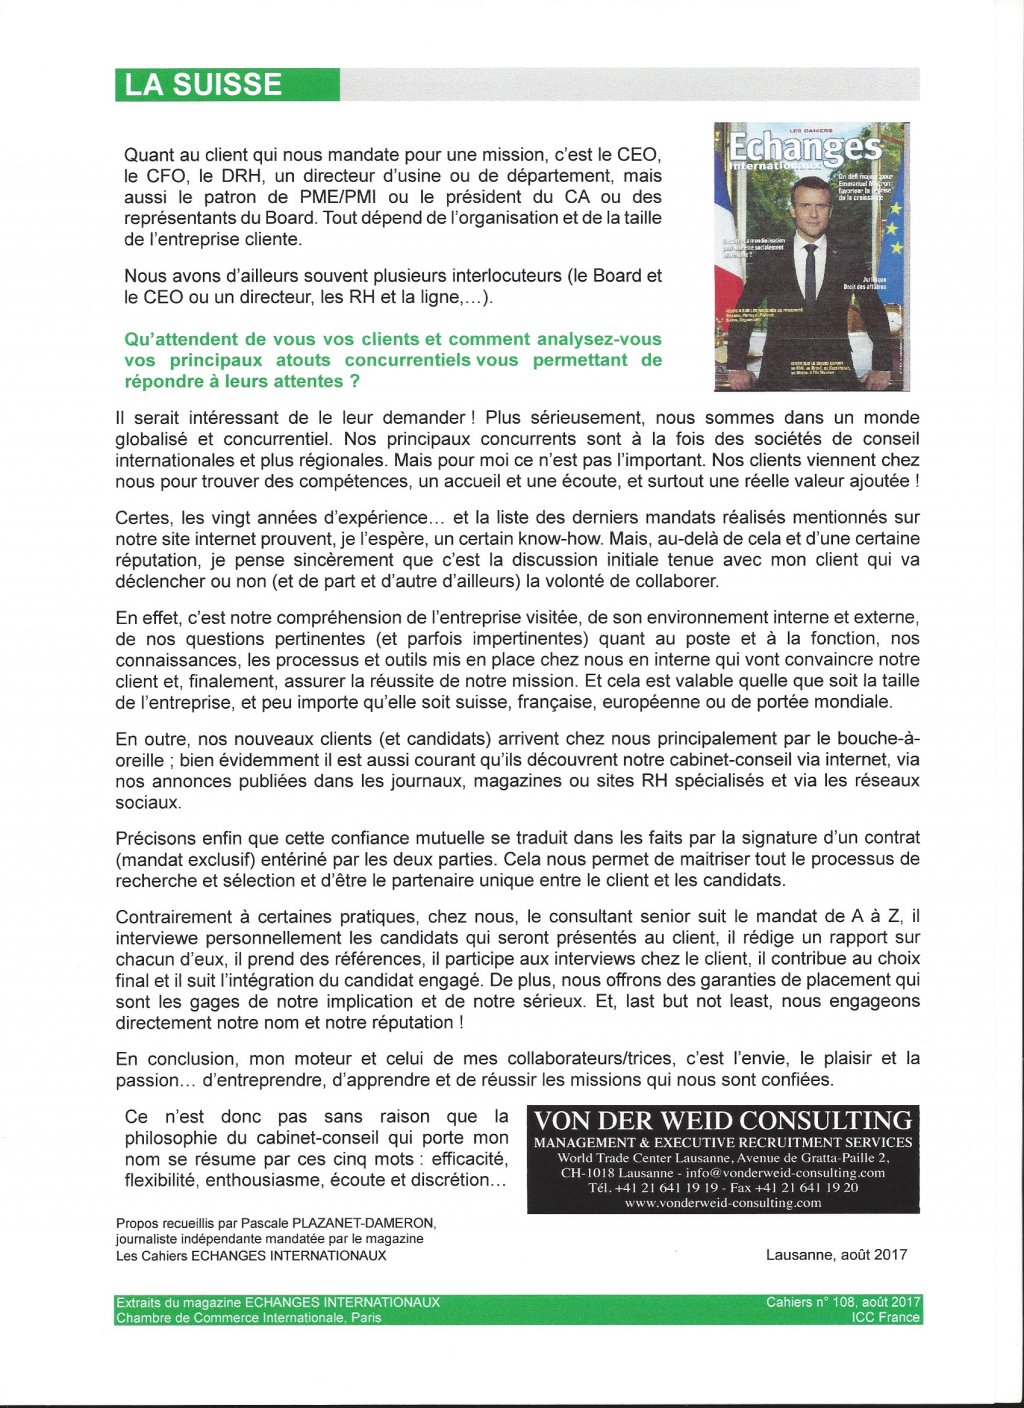 Von der weid consulting executive search selection for Cci chambre de commerce internationale